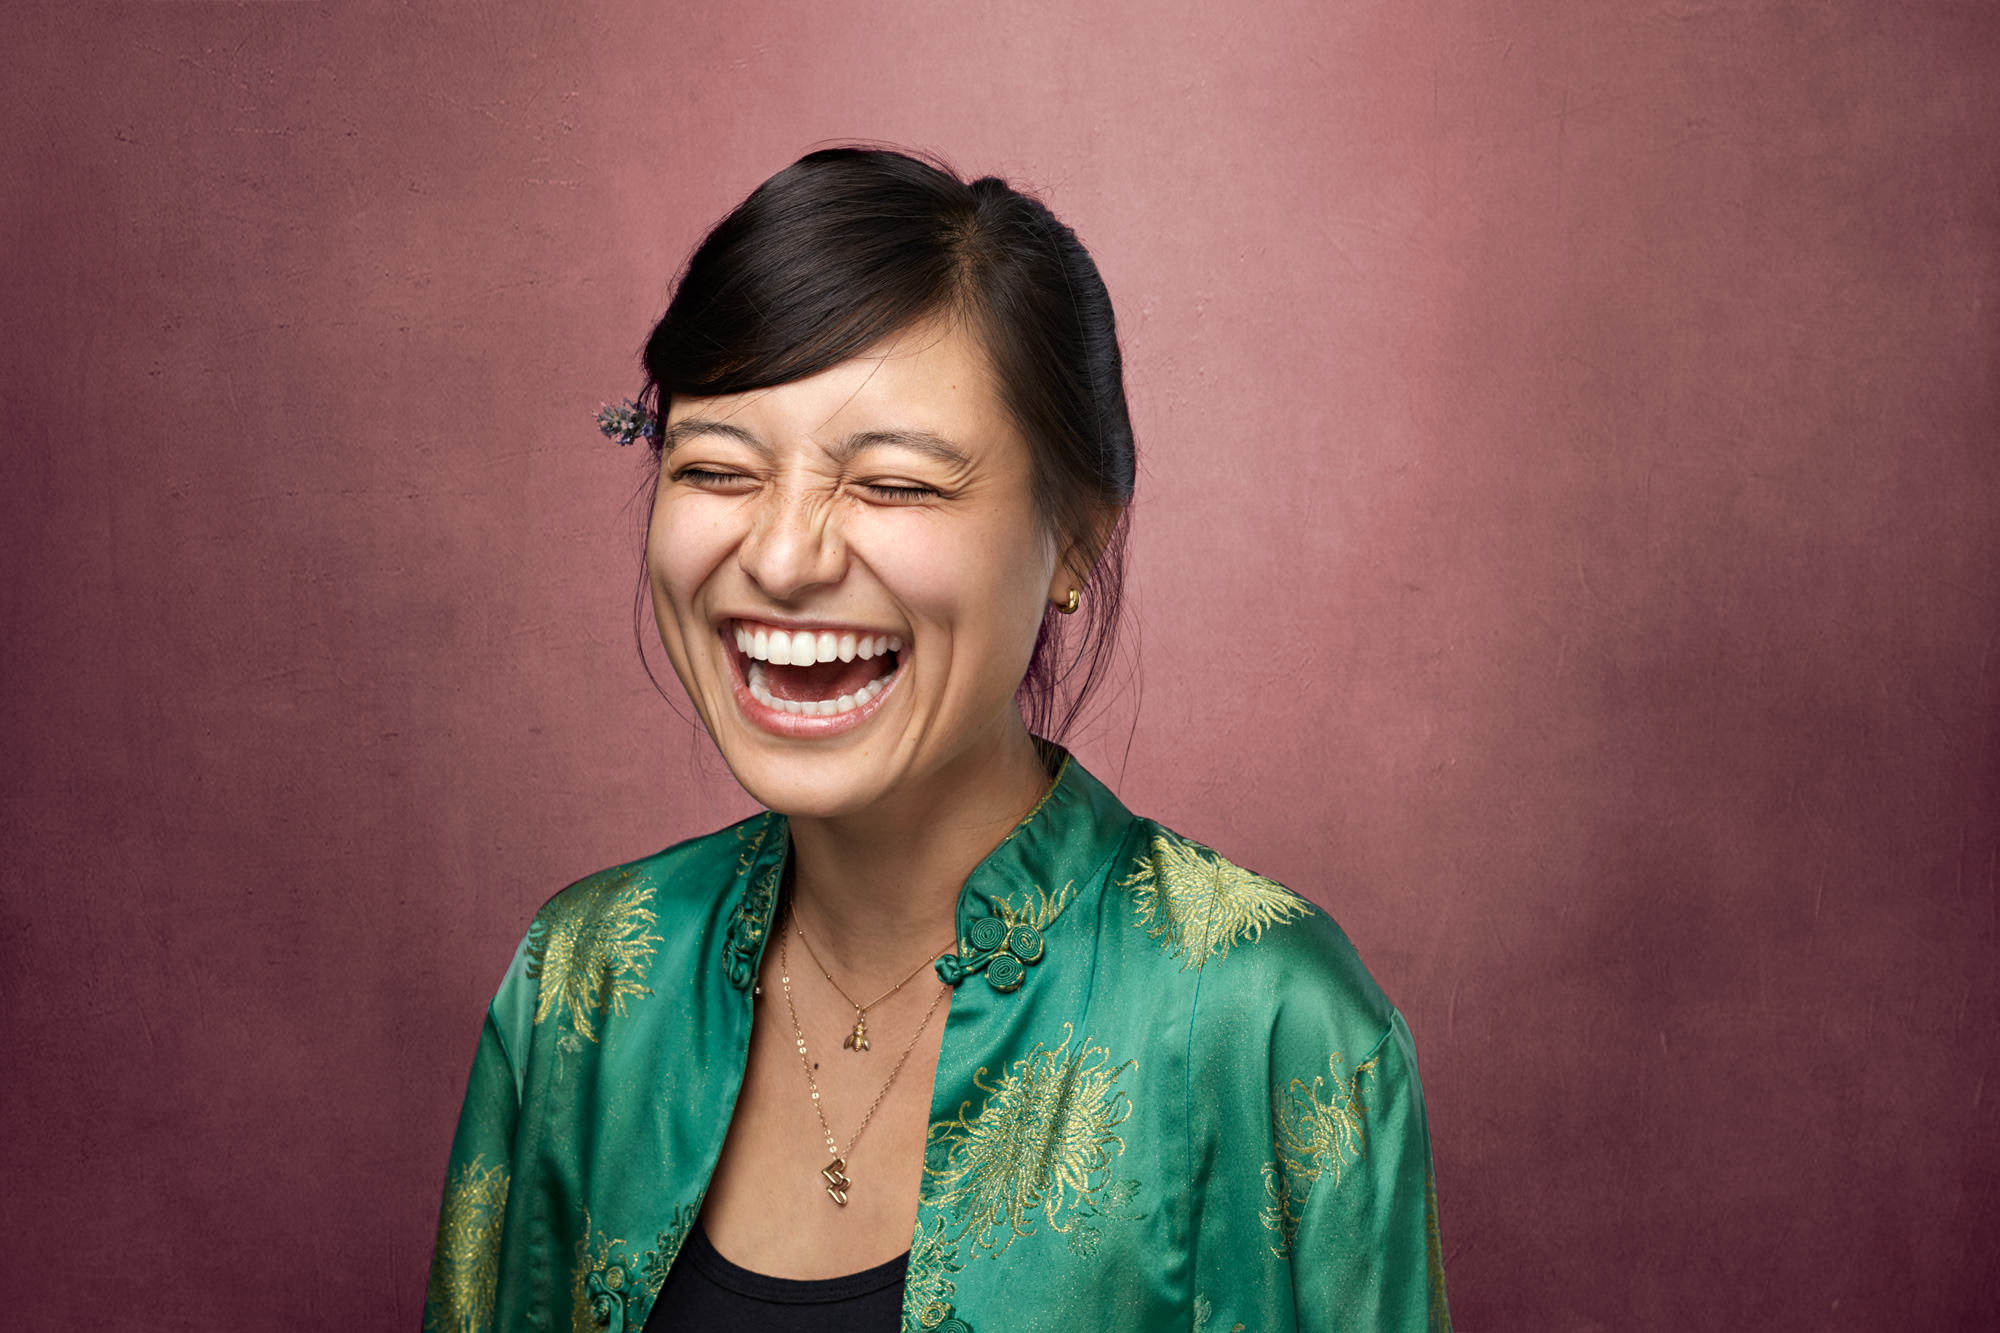 Artistic Professional Headshot Woman Laughing